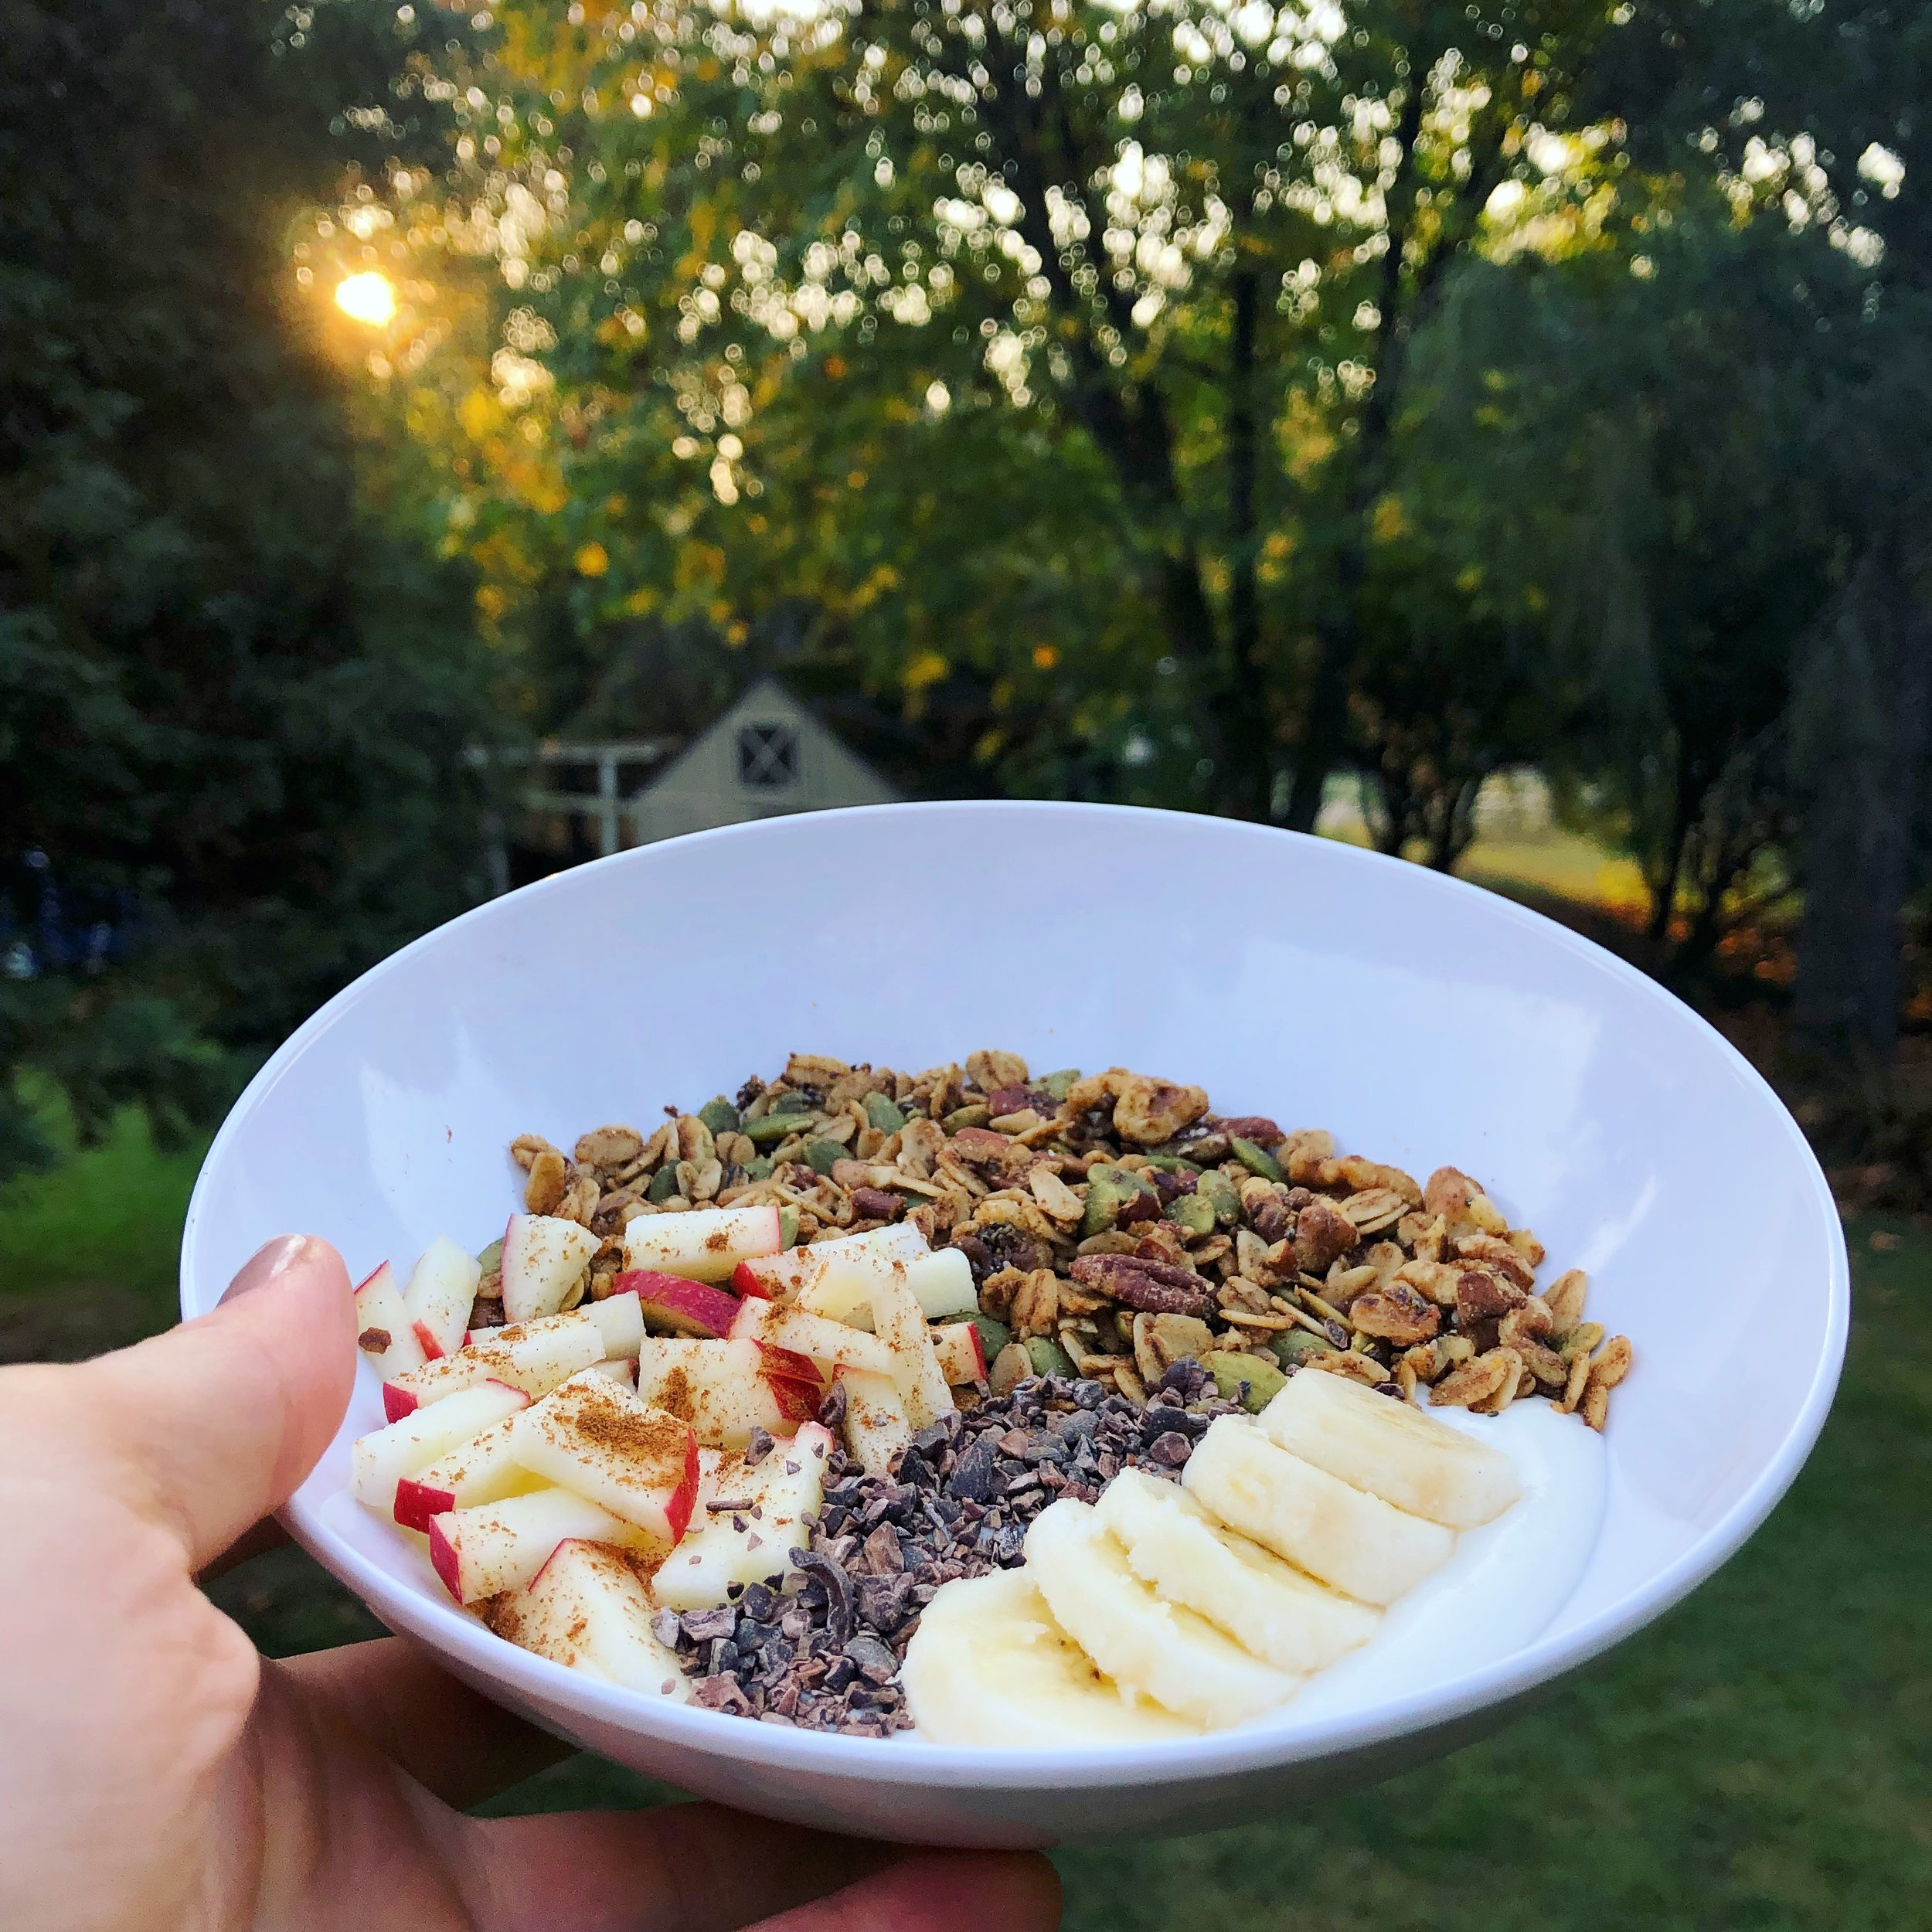 This granola makes the best yogurt bowl topping! As you can see here, I love it with apples, cocoa nibs, and bananas.